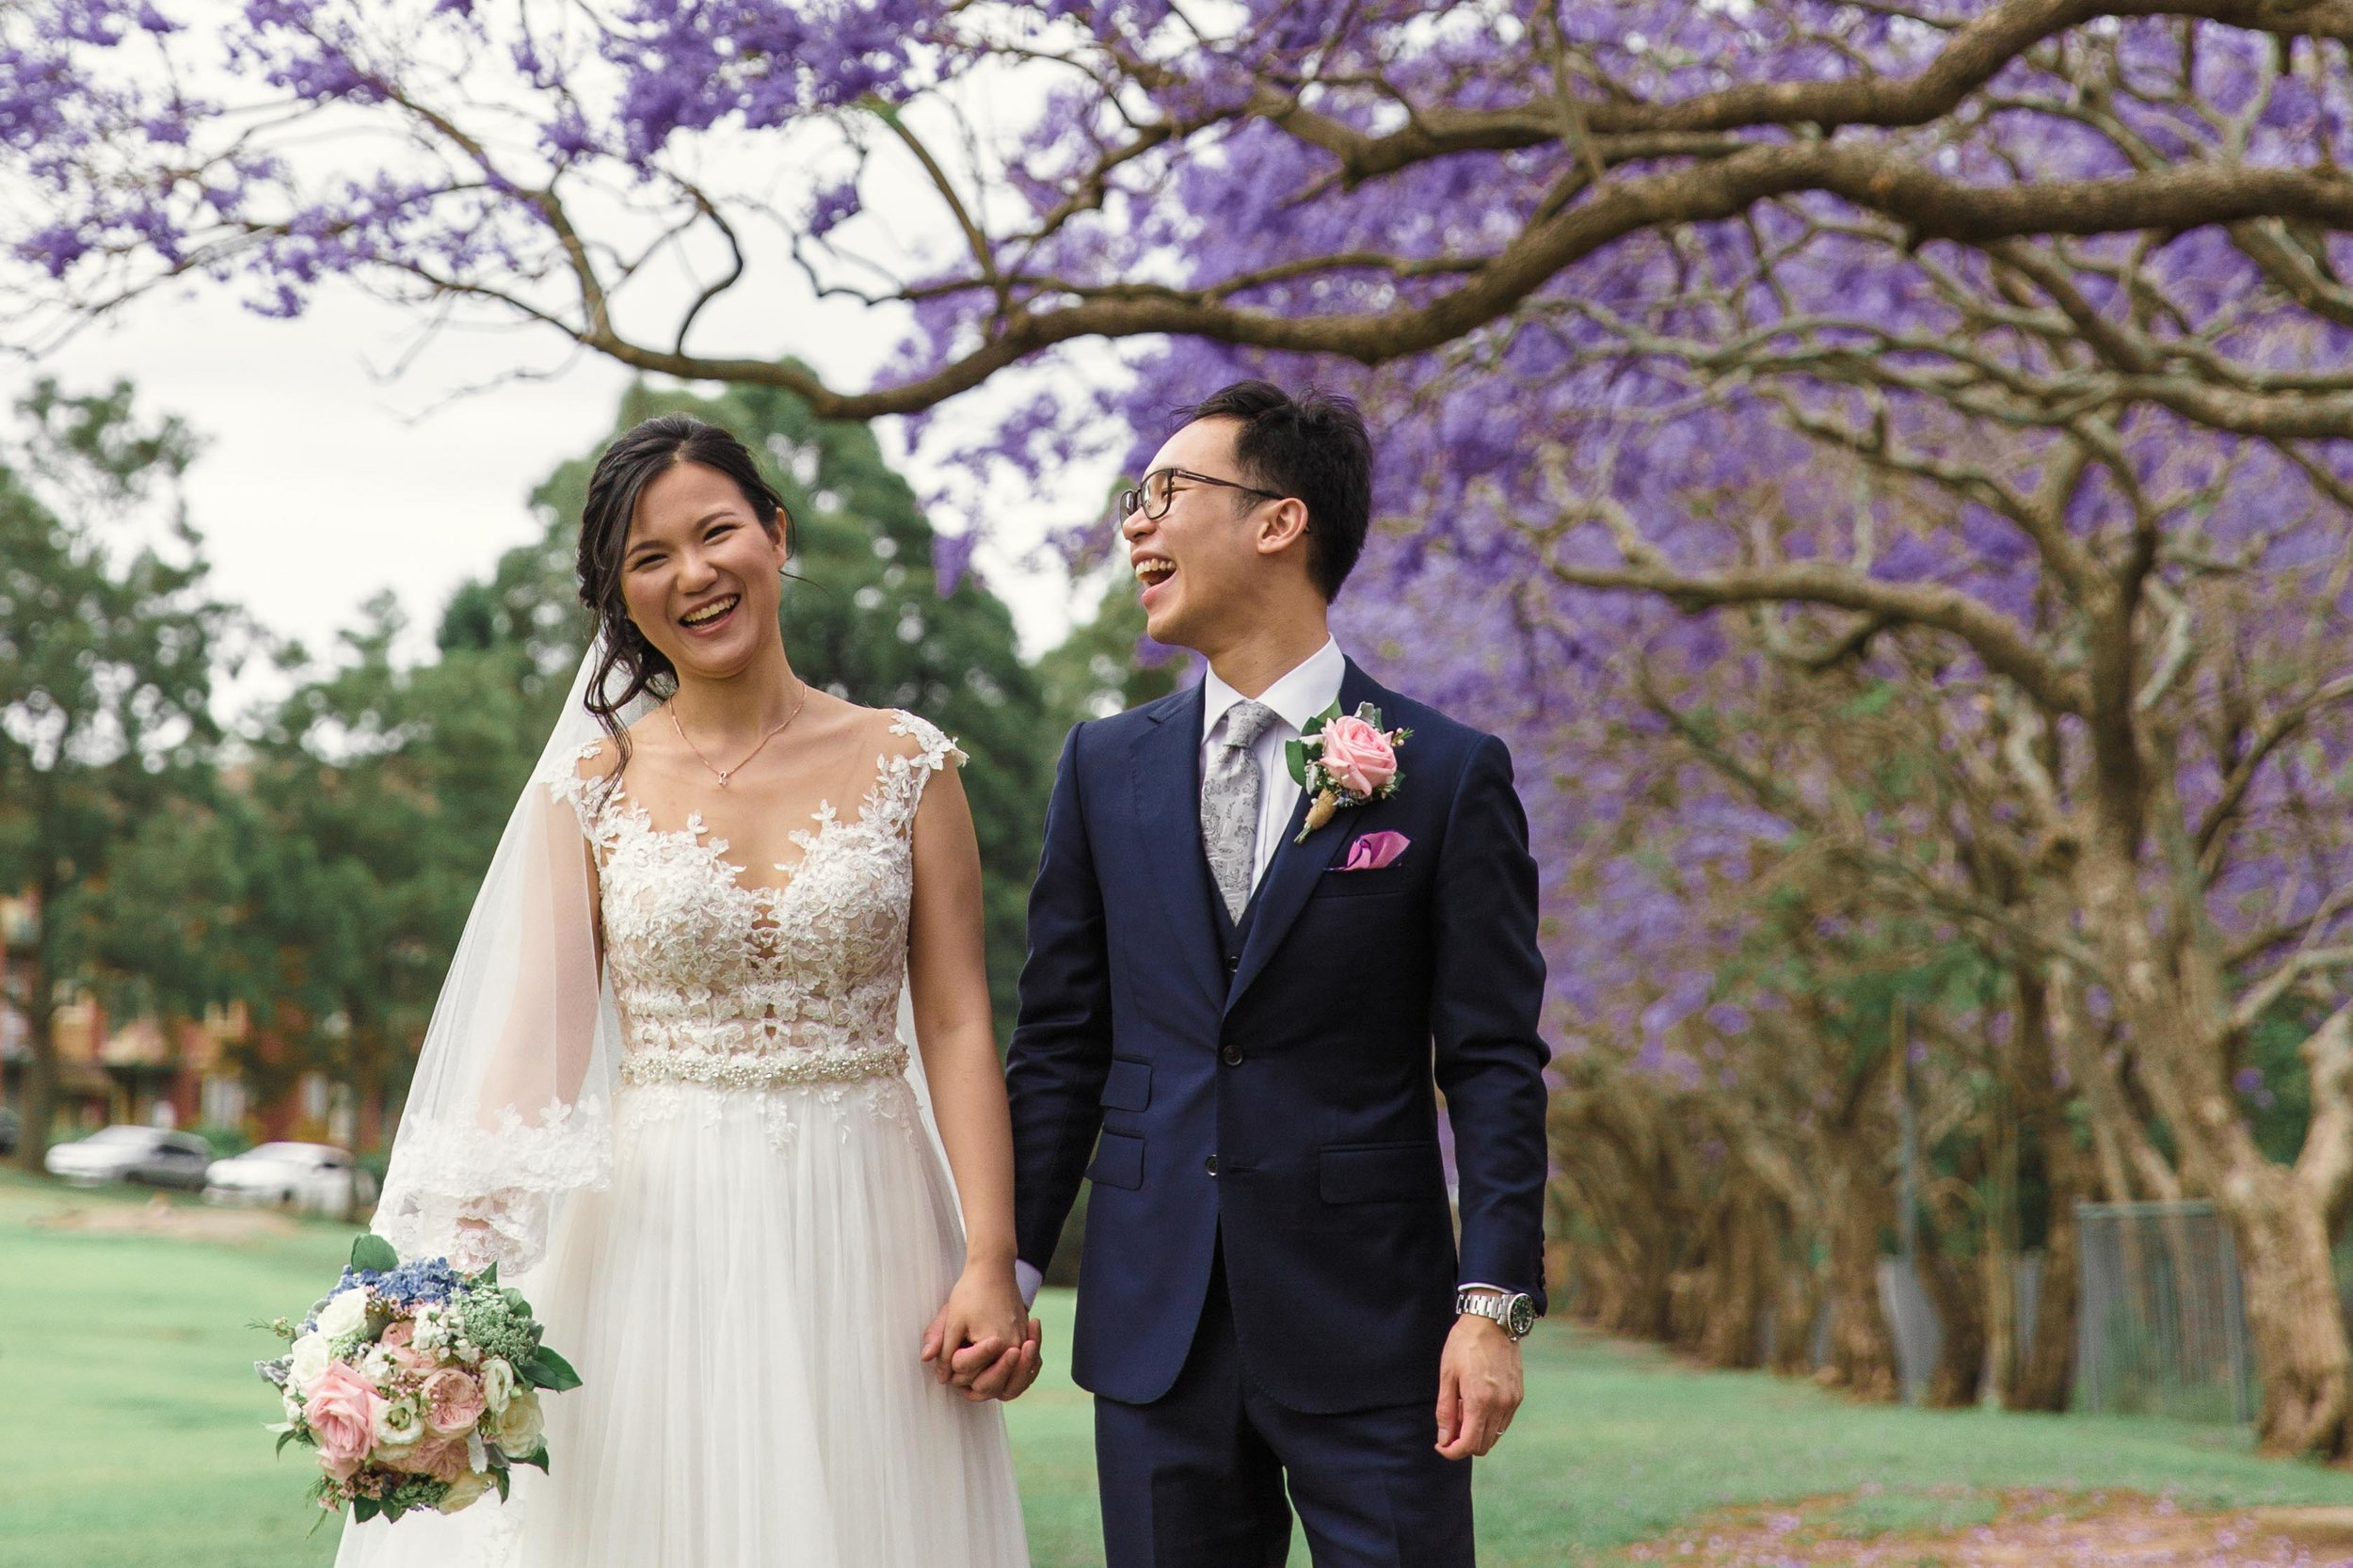 Photographed With Love Candid Wedding Photography Sydney